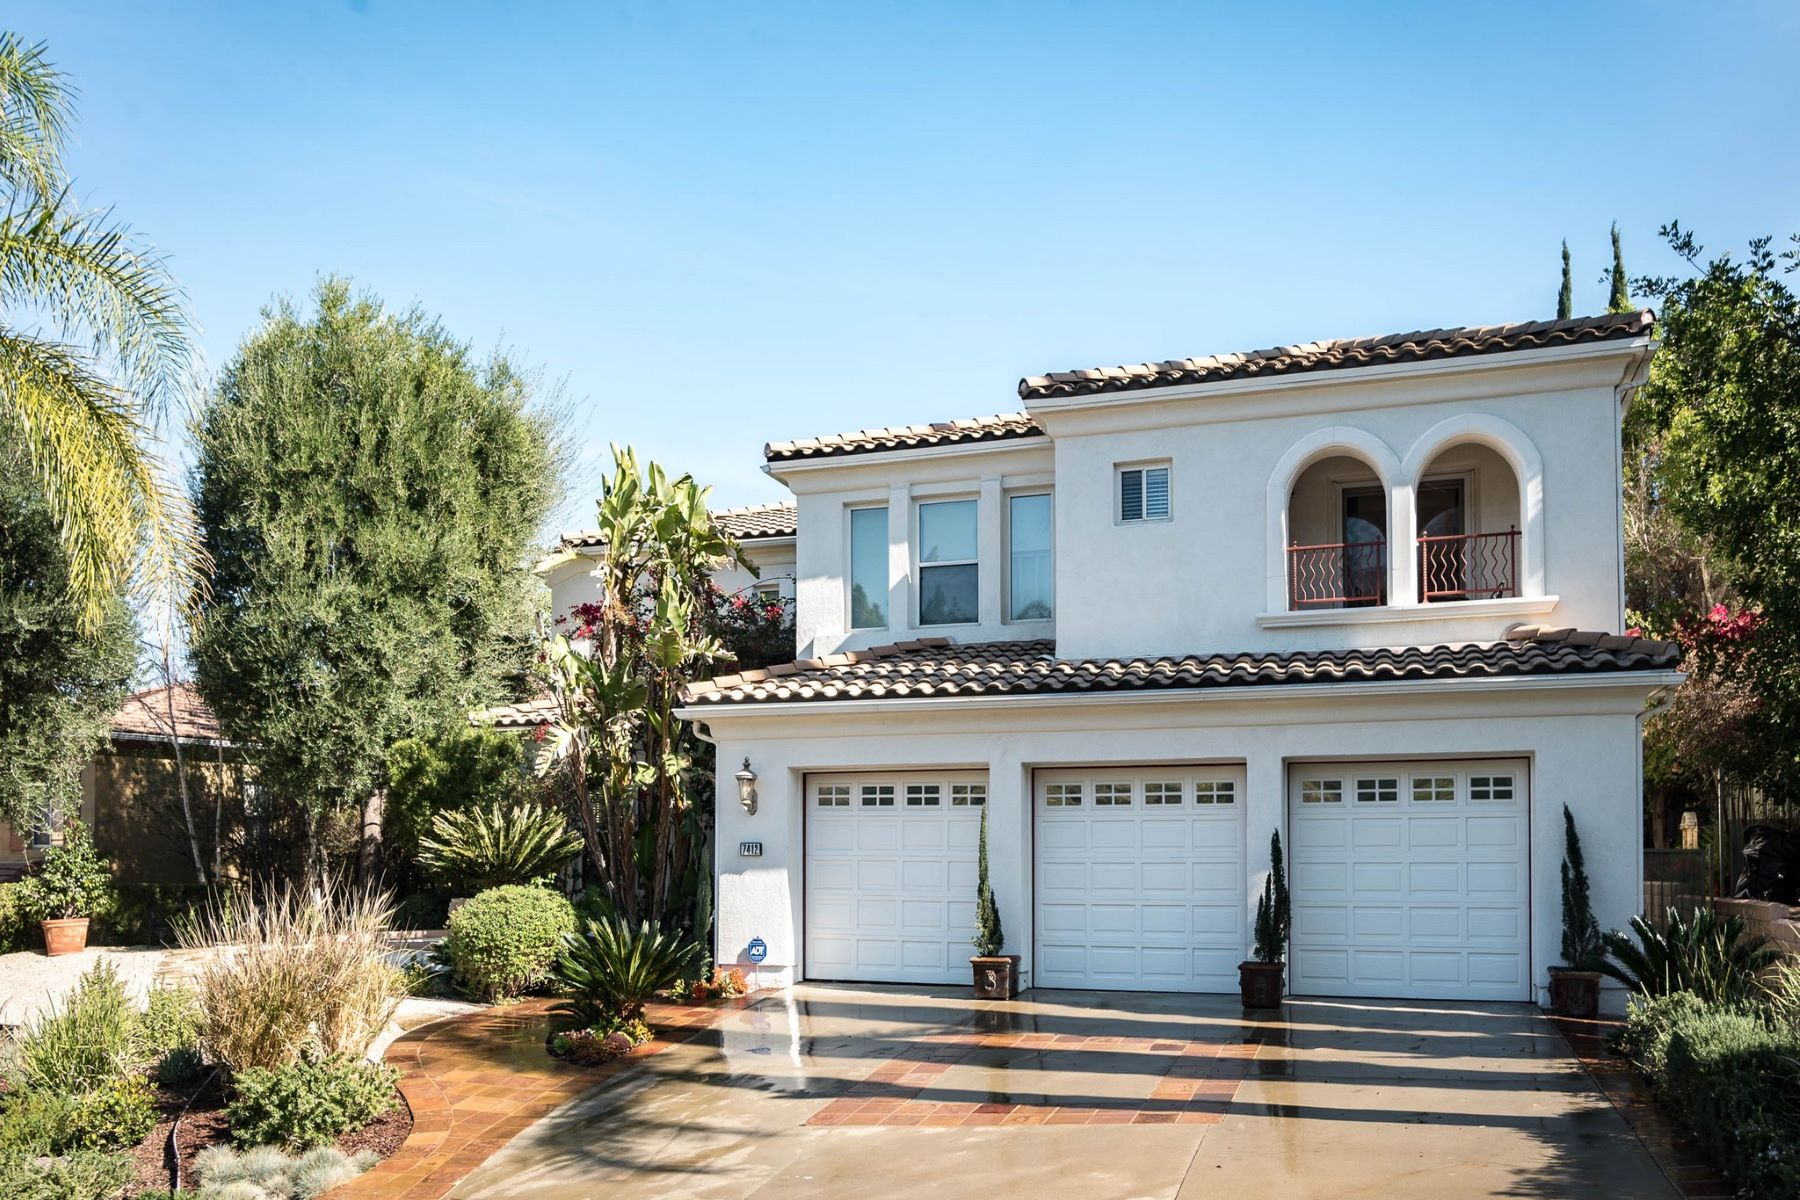 Single Family Home for Sale at 7412 Dorie Drive 7412 Dorie Drive West Hills, California 91307 United States